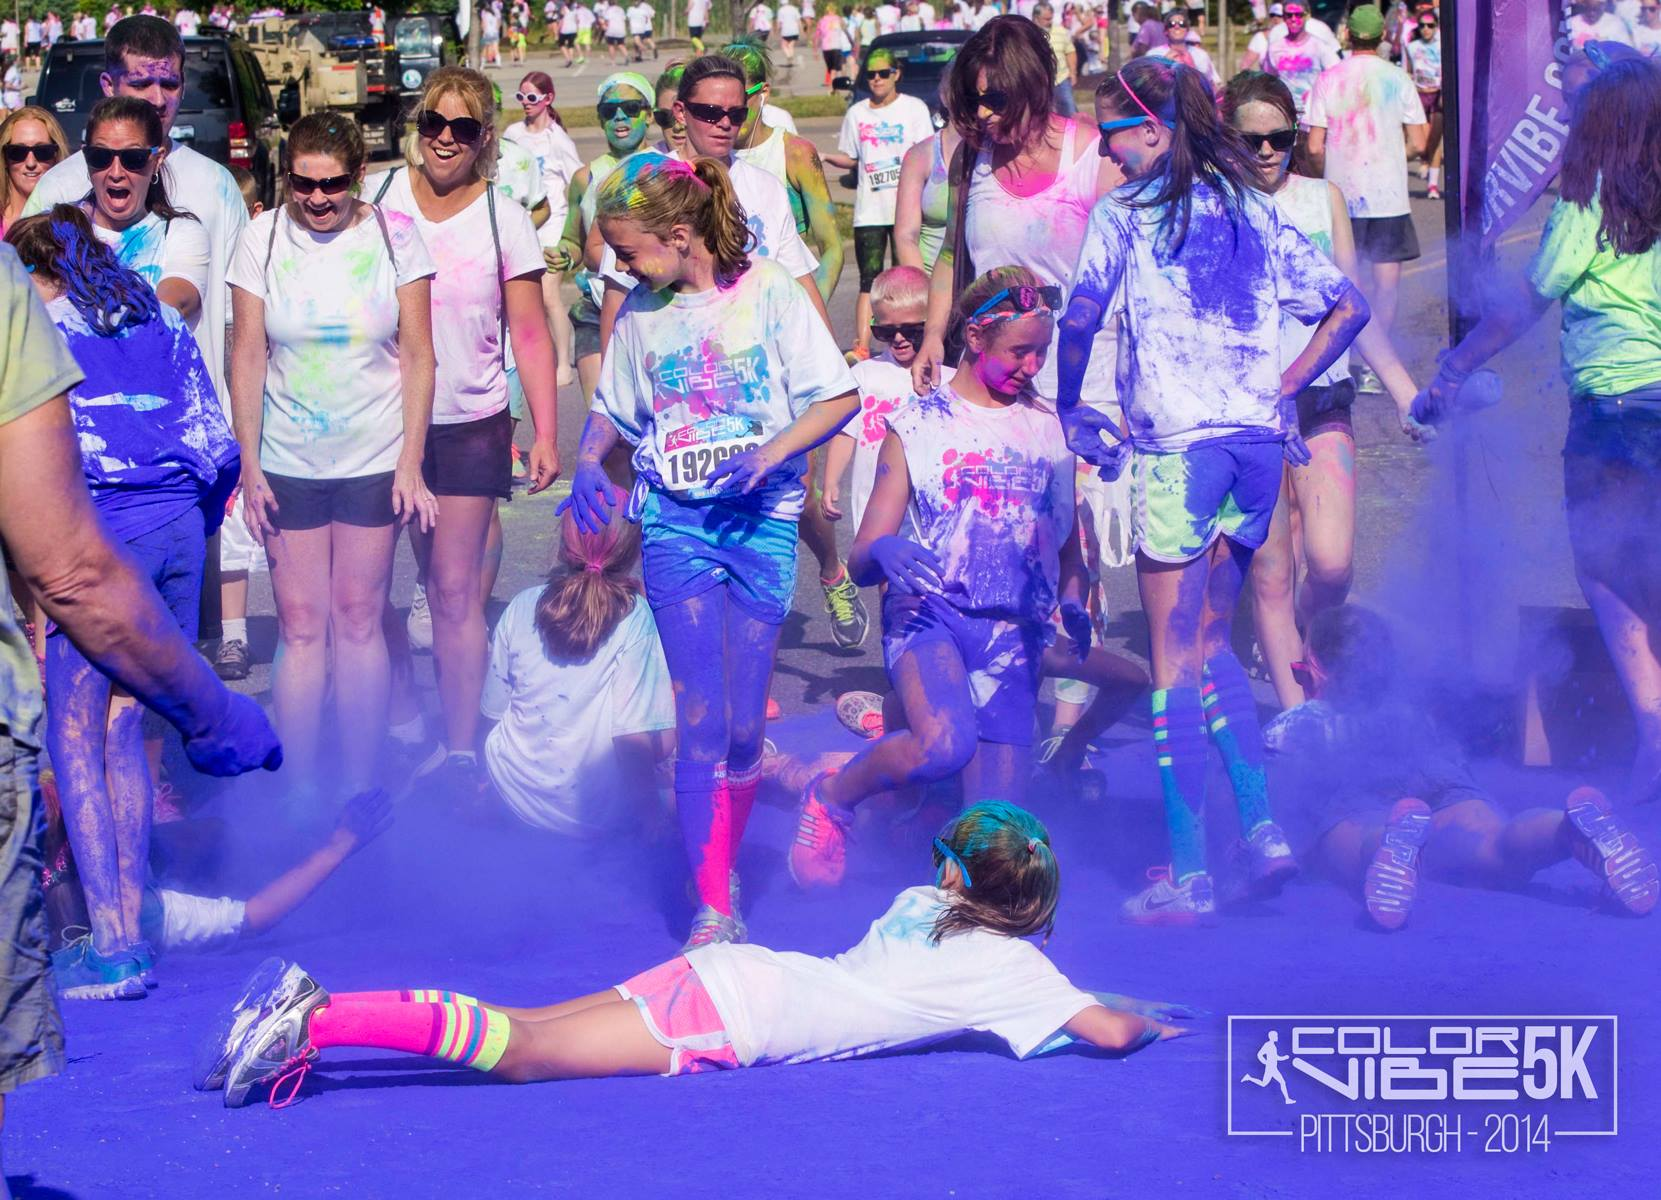 Color party at the purple station